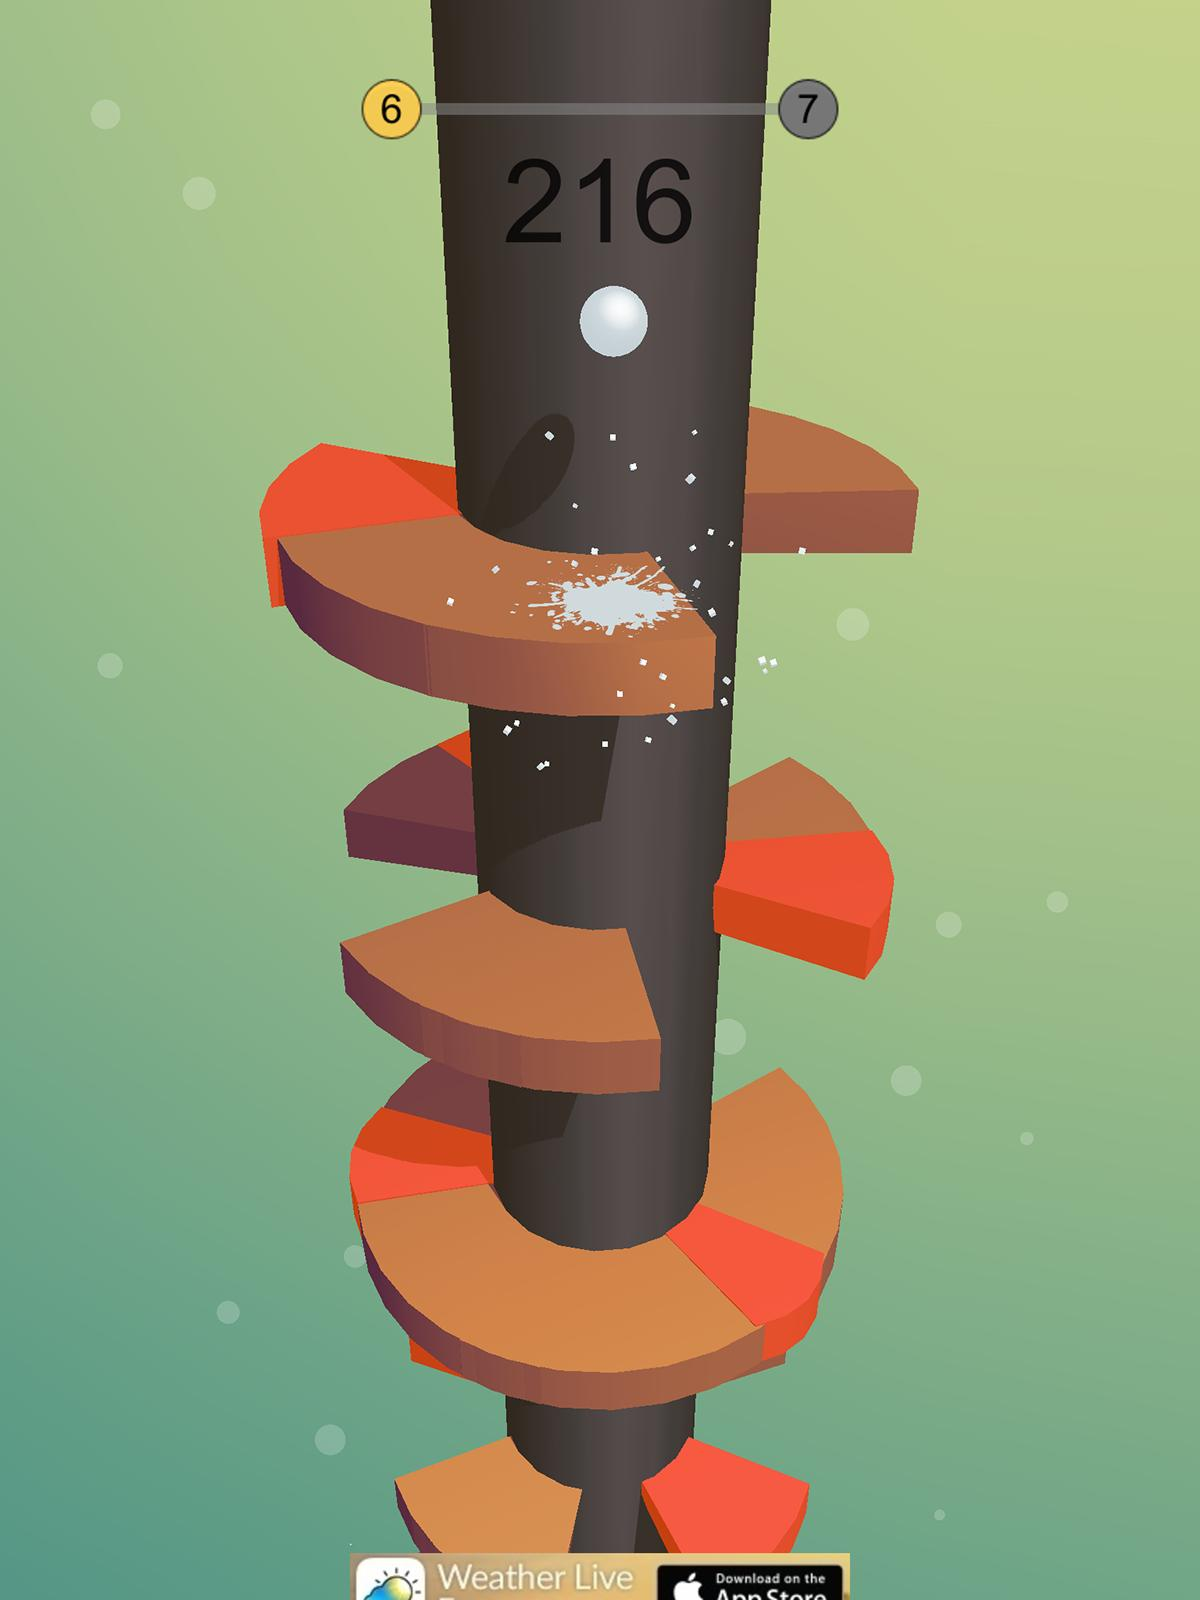 Helix Jump cheats and tips - Everything you need to get high scores in Helix Jump